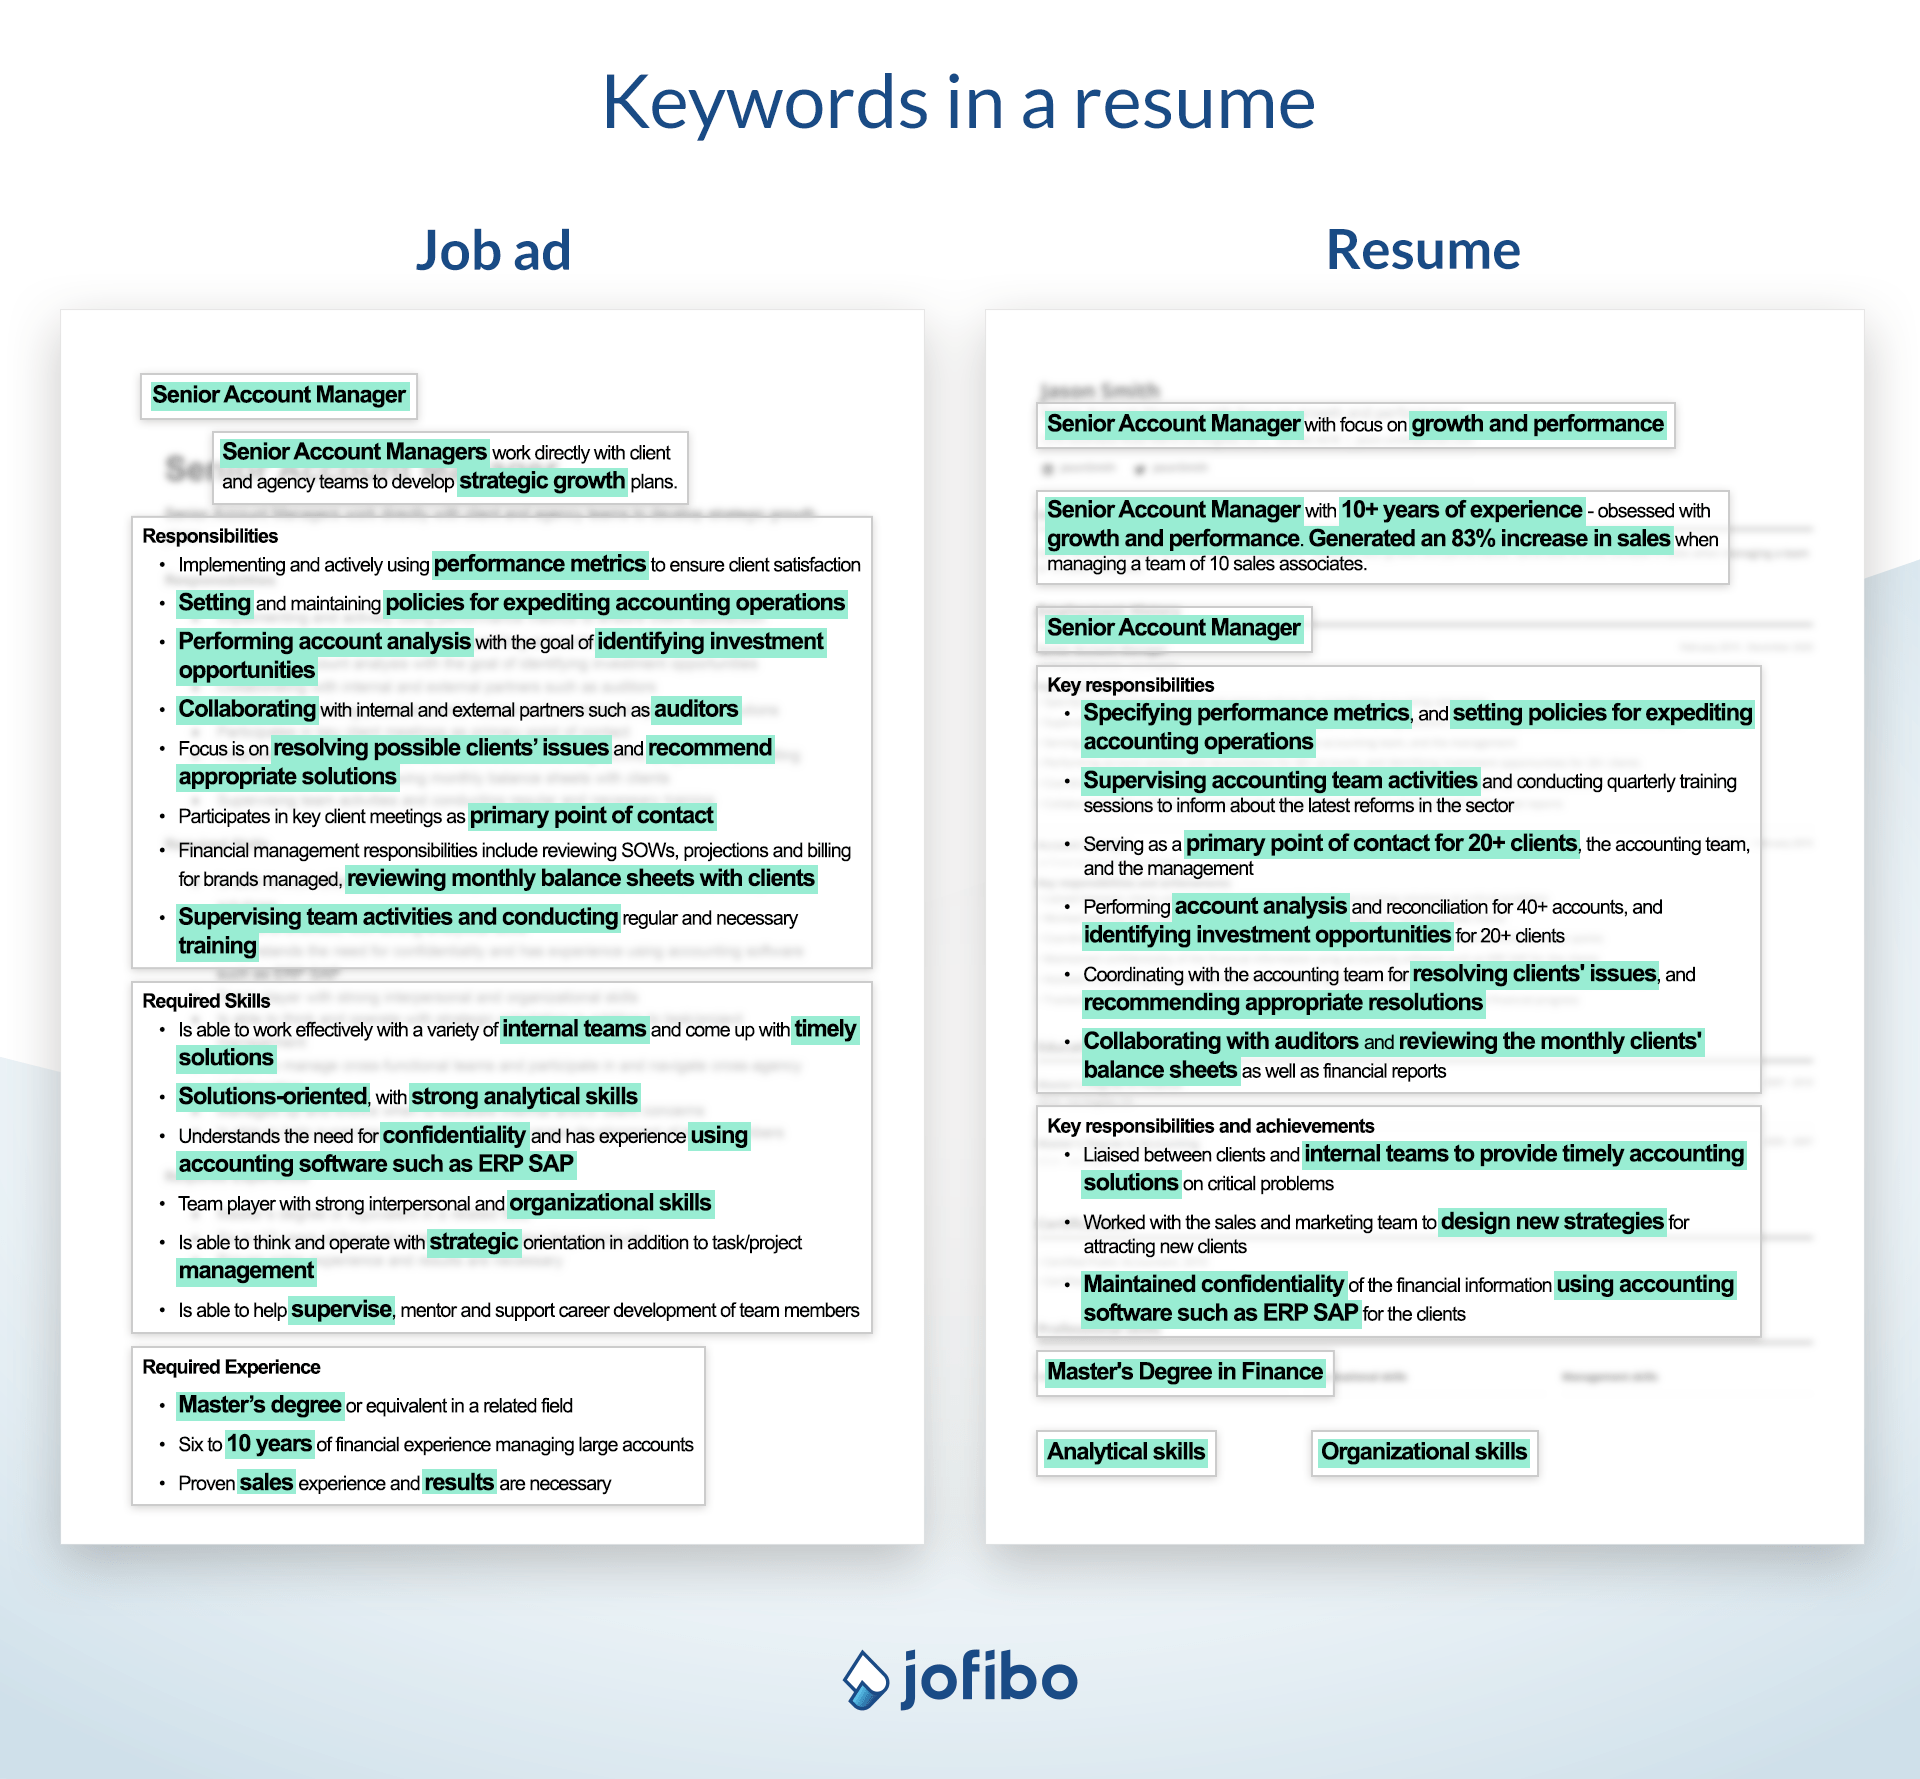 Illustration of how to add keywords from a job ad to your resume